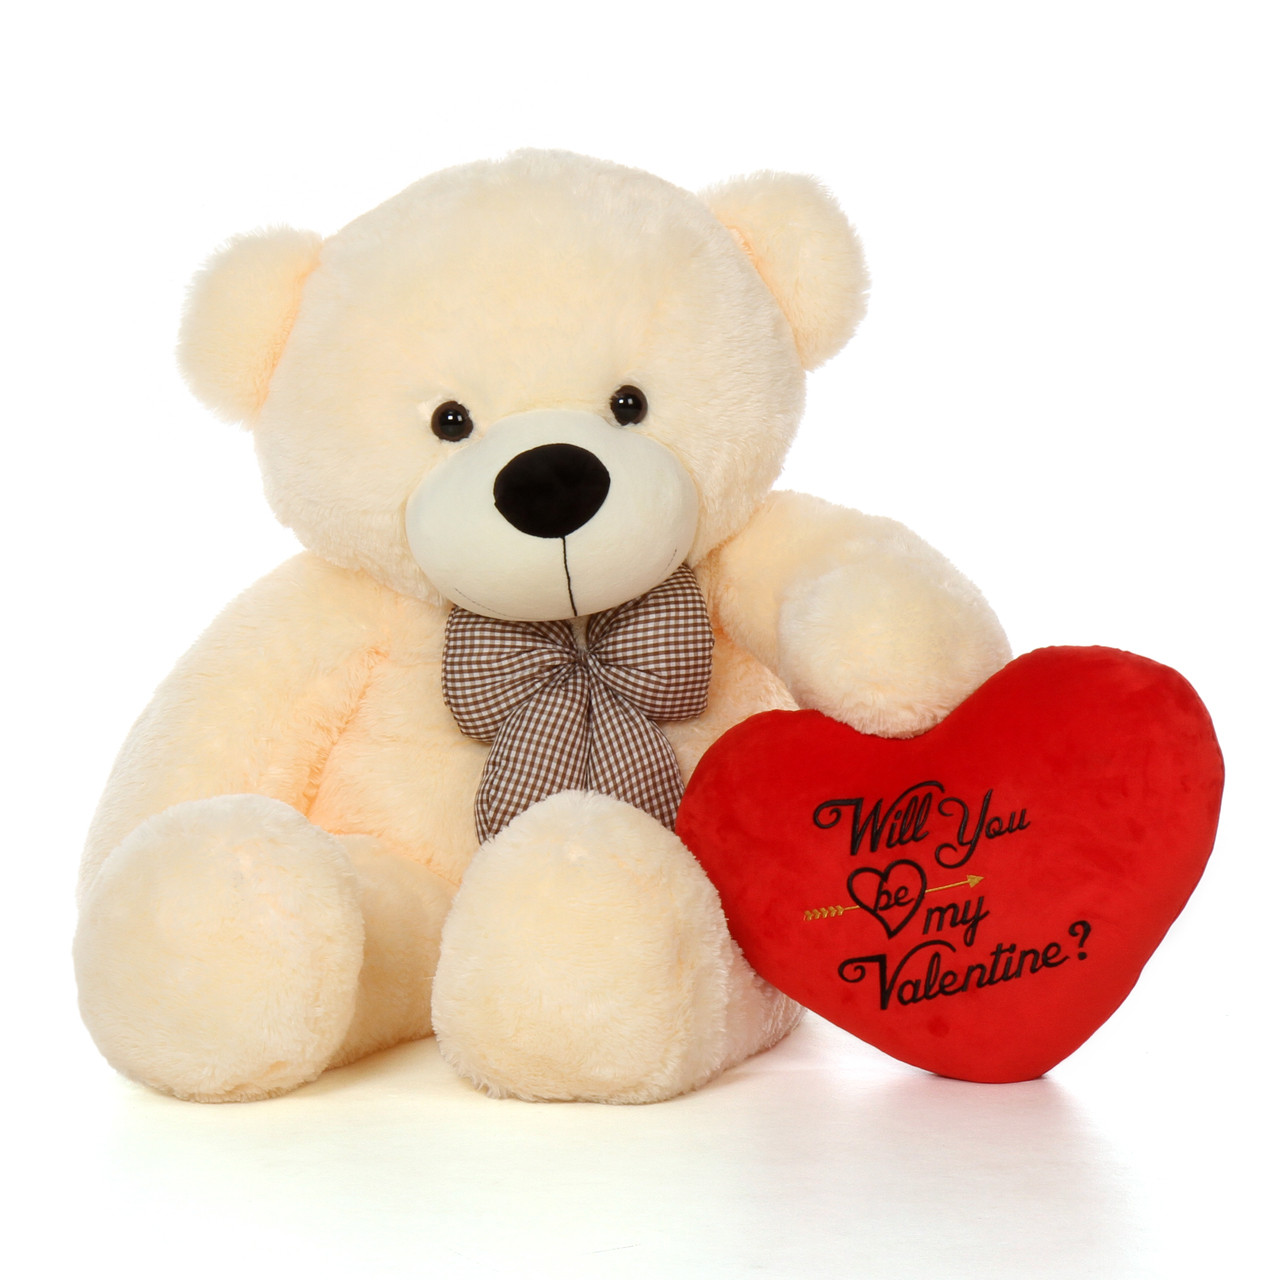 4ft cozy cuddles giant teddy bear w red heart will you be my valentine - Giant Teddy Bears For Valentines Day